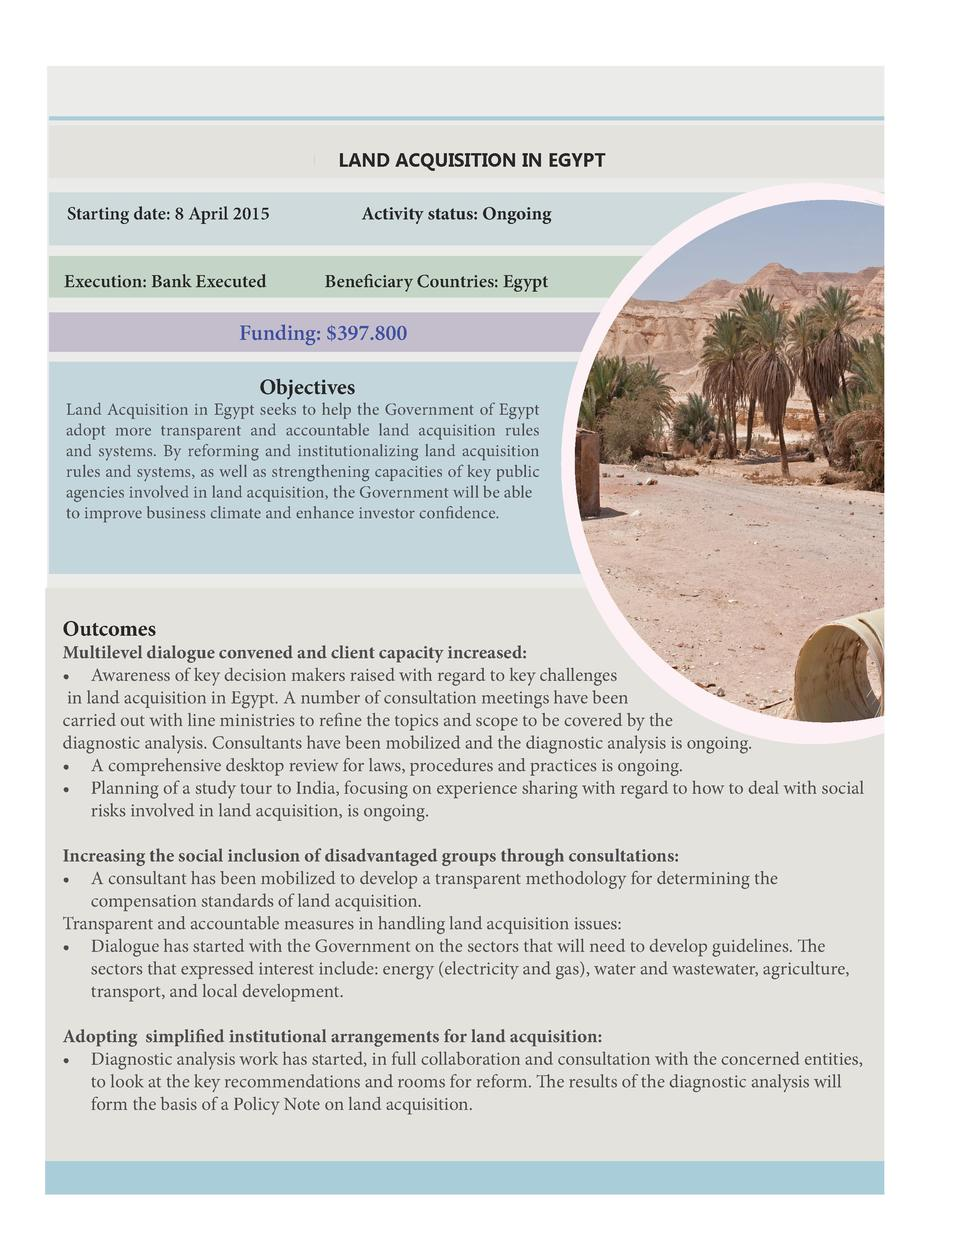 LAND ACQUISITION IN EGYPT Starting date  8 April 2015  Activity status  Ongoing  Execution  Bank Executed  Beneficiary Cou...